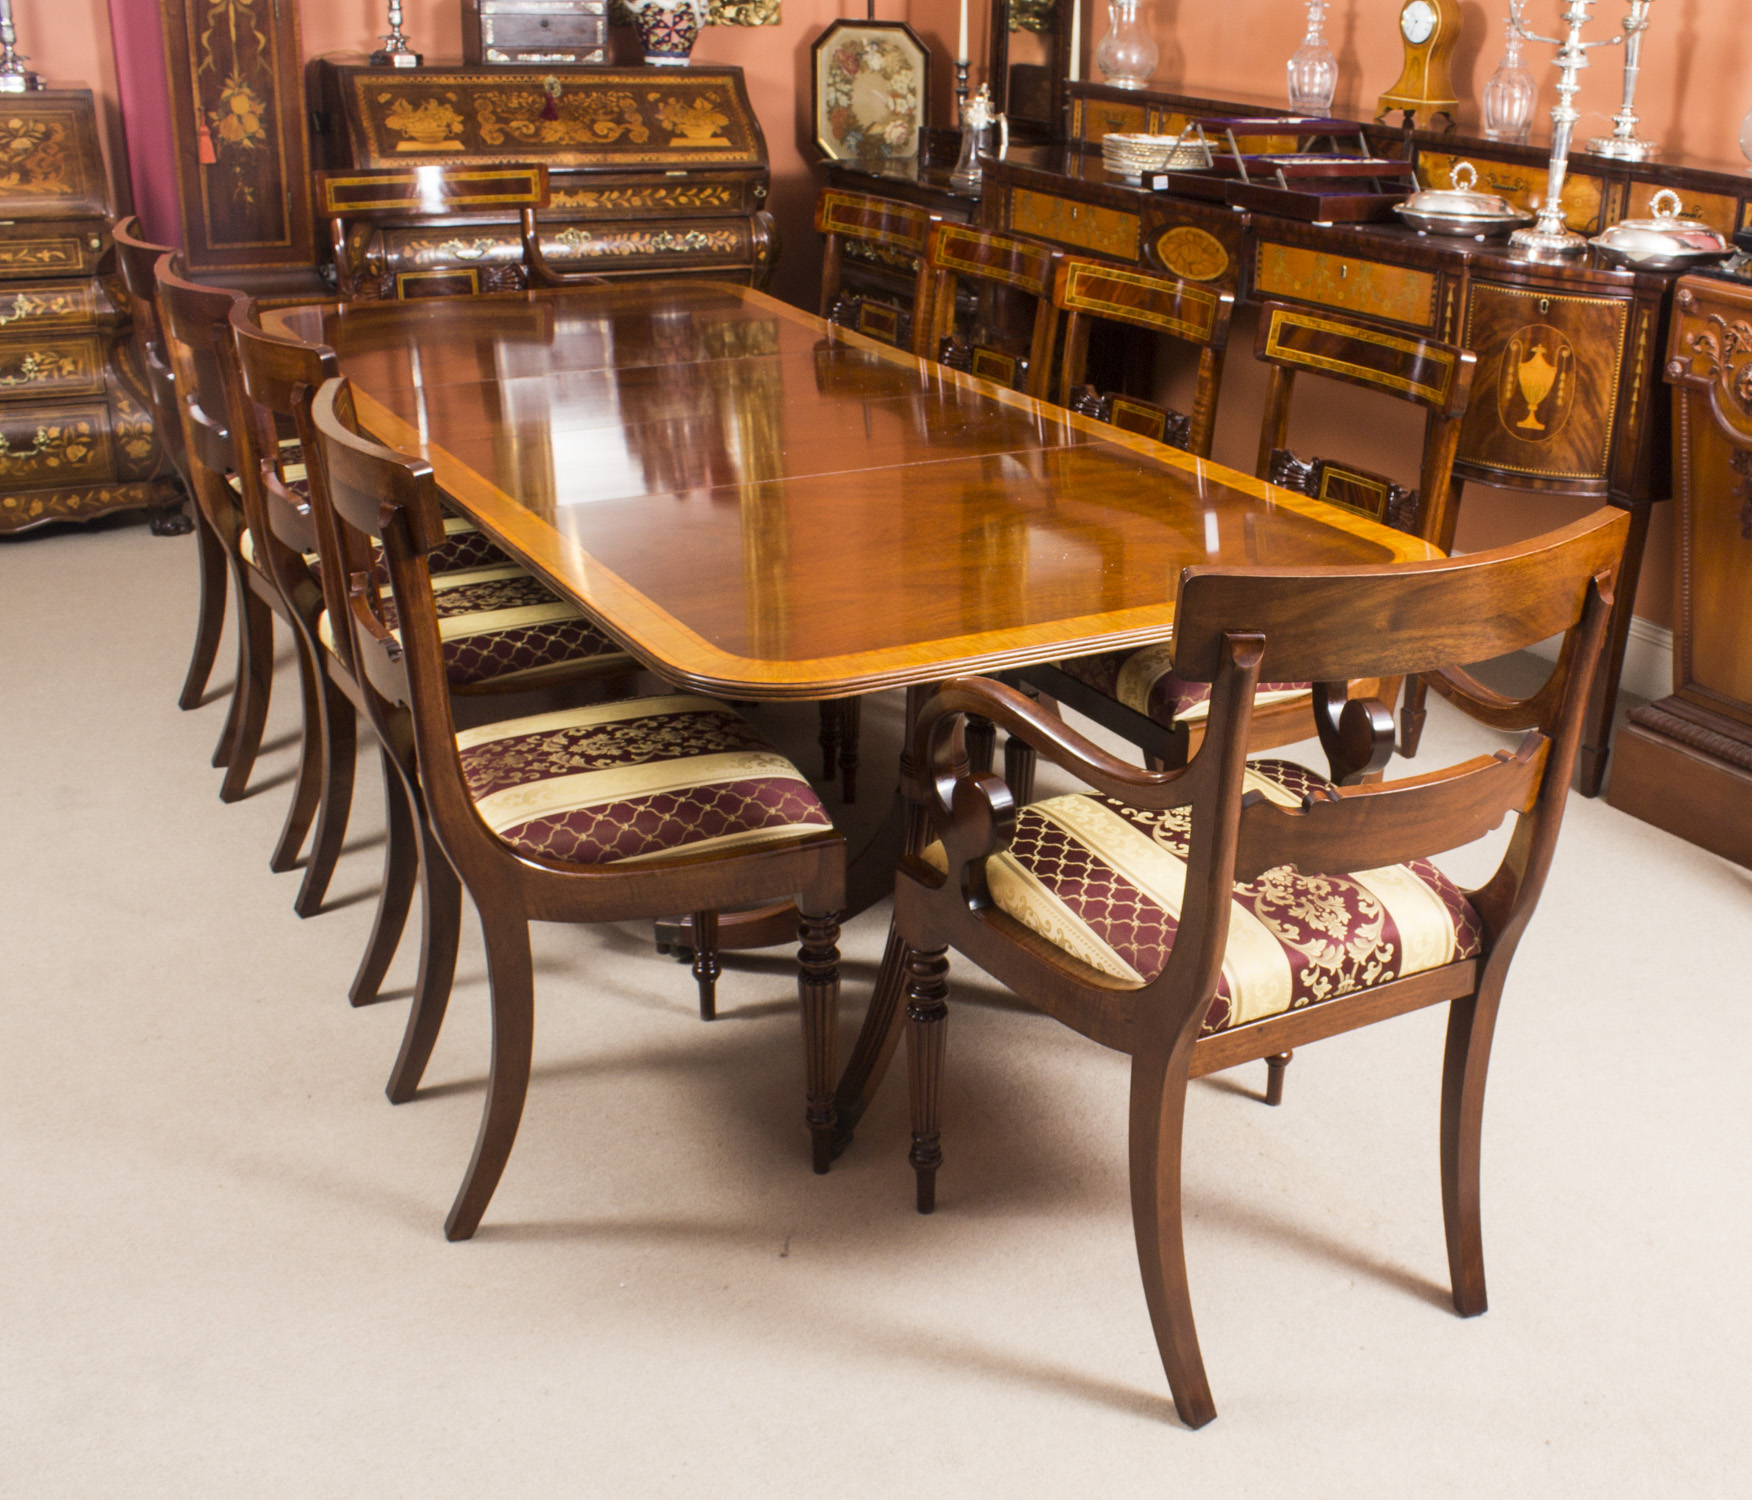 Vintage Dining Table By William Tillman Harrods 10 Chairs